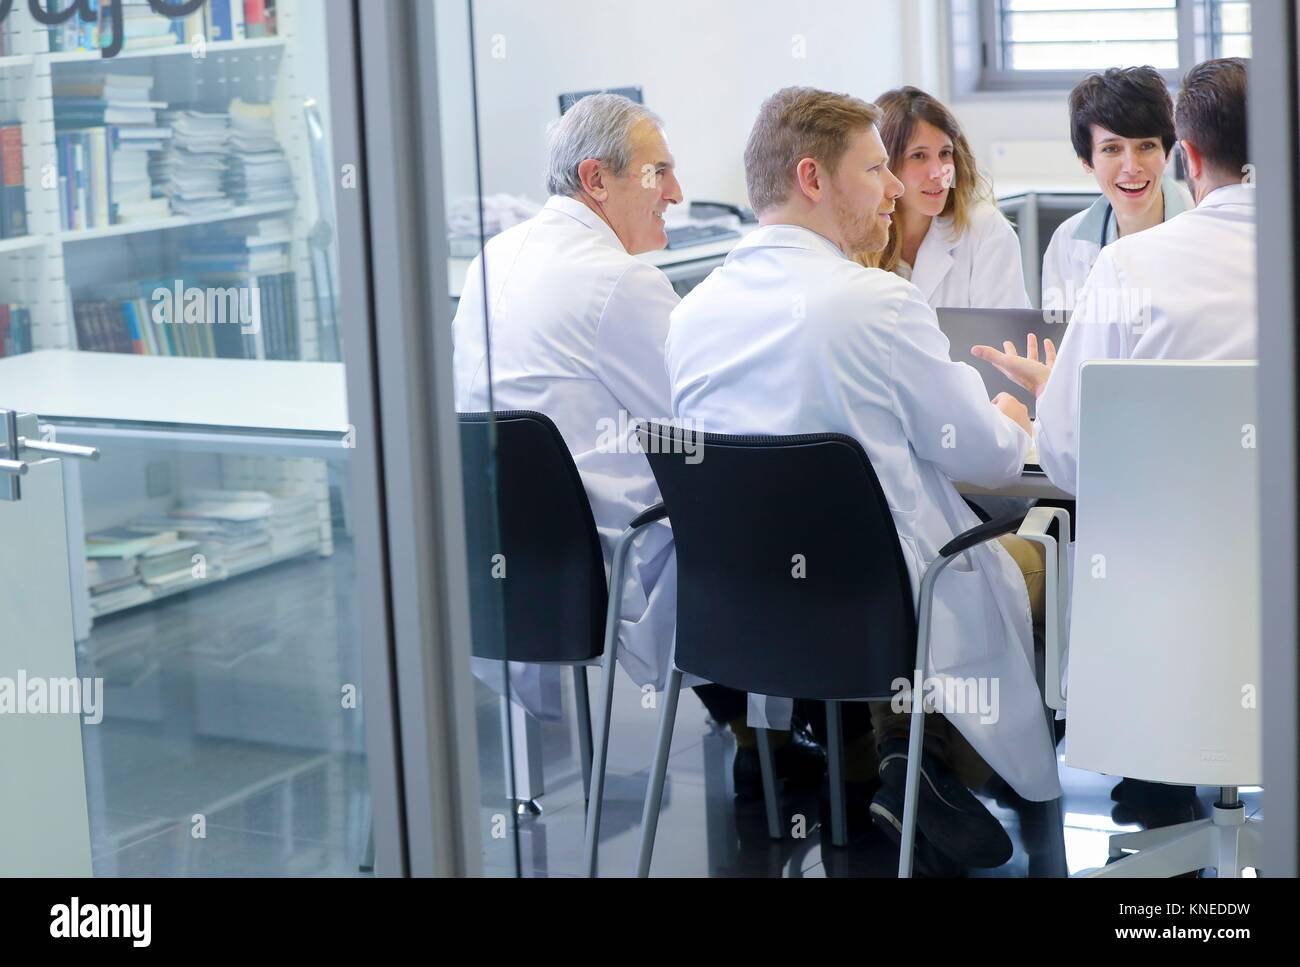 Meeting of doctors, clinical session, Hospital - Stock Image